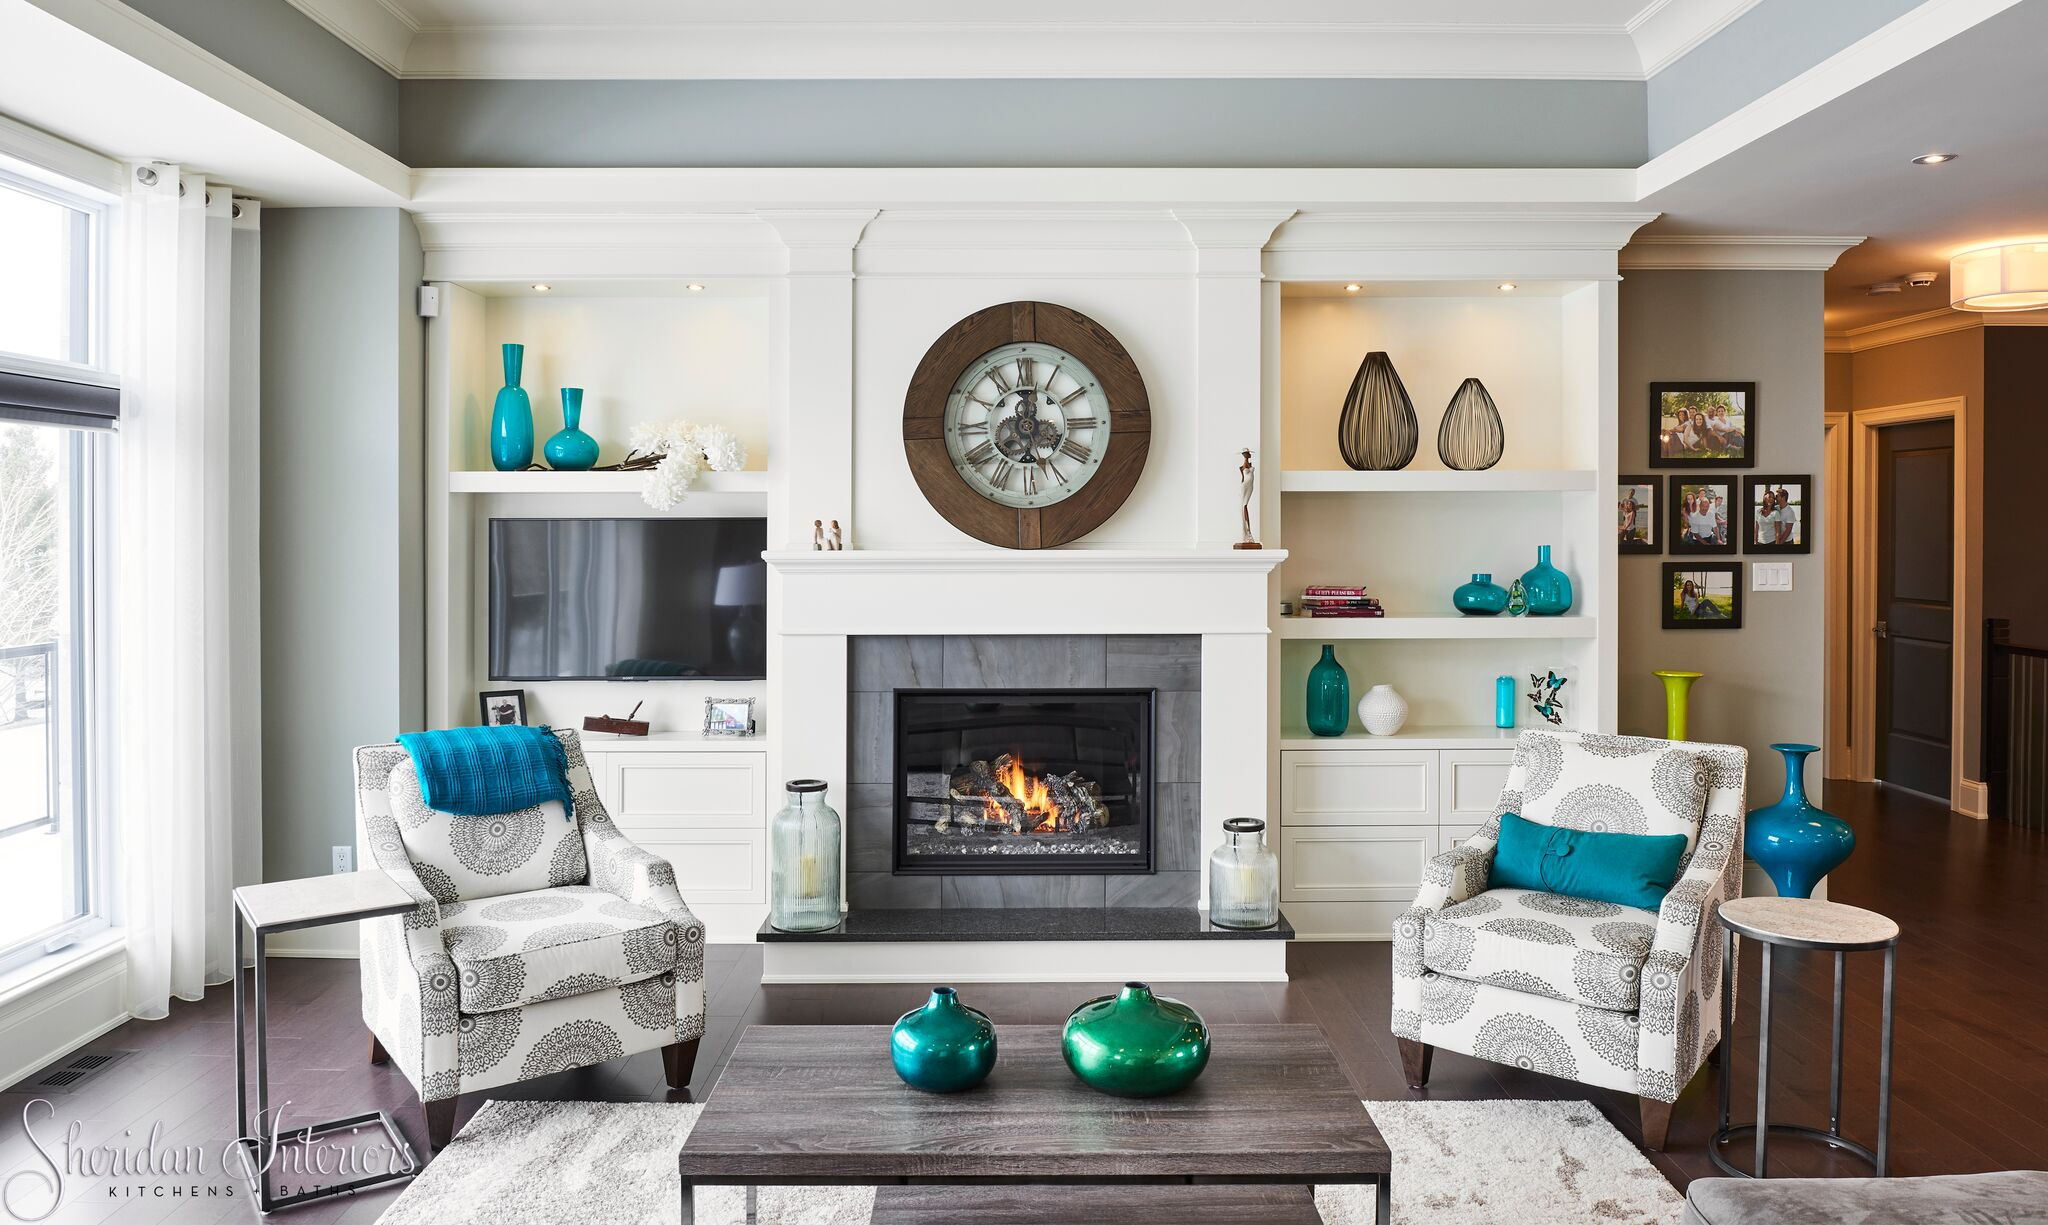 Transitional Living Room, custom built-cabinetry, fireplace, grommet drapery